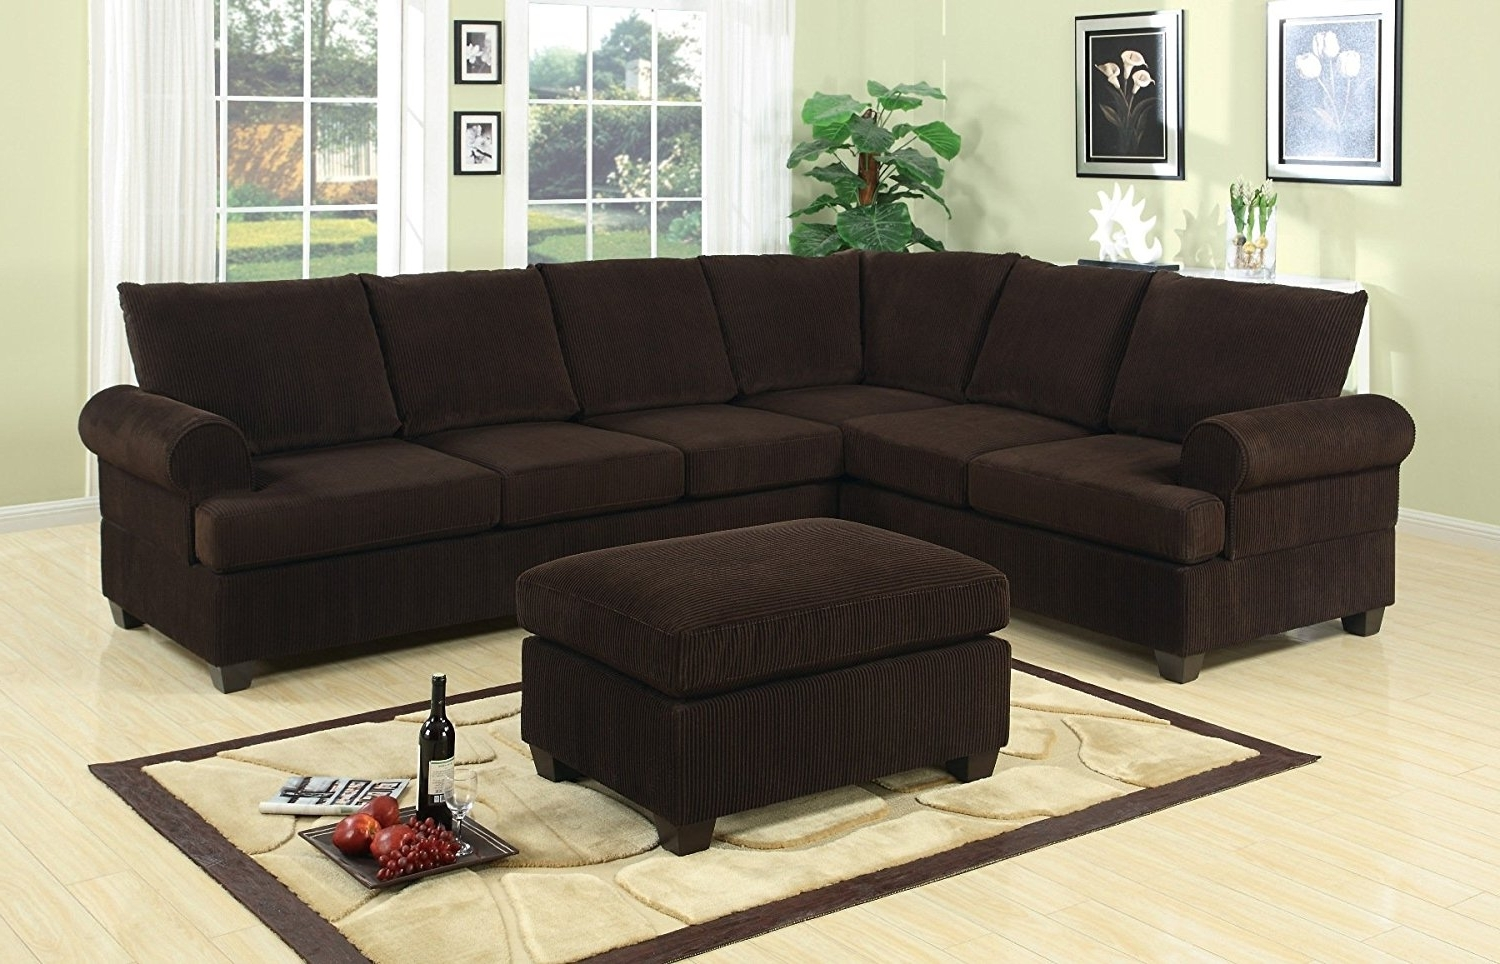 Well Known Sectional Sofas Jacksonville Fl – Home And Textiles With Regard To Jacksonville Fl Sectional Sofas (View 14 of 15)